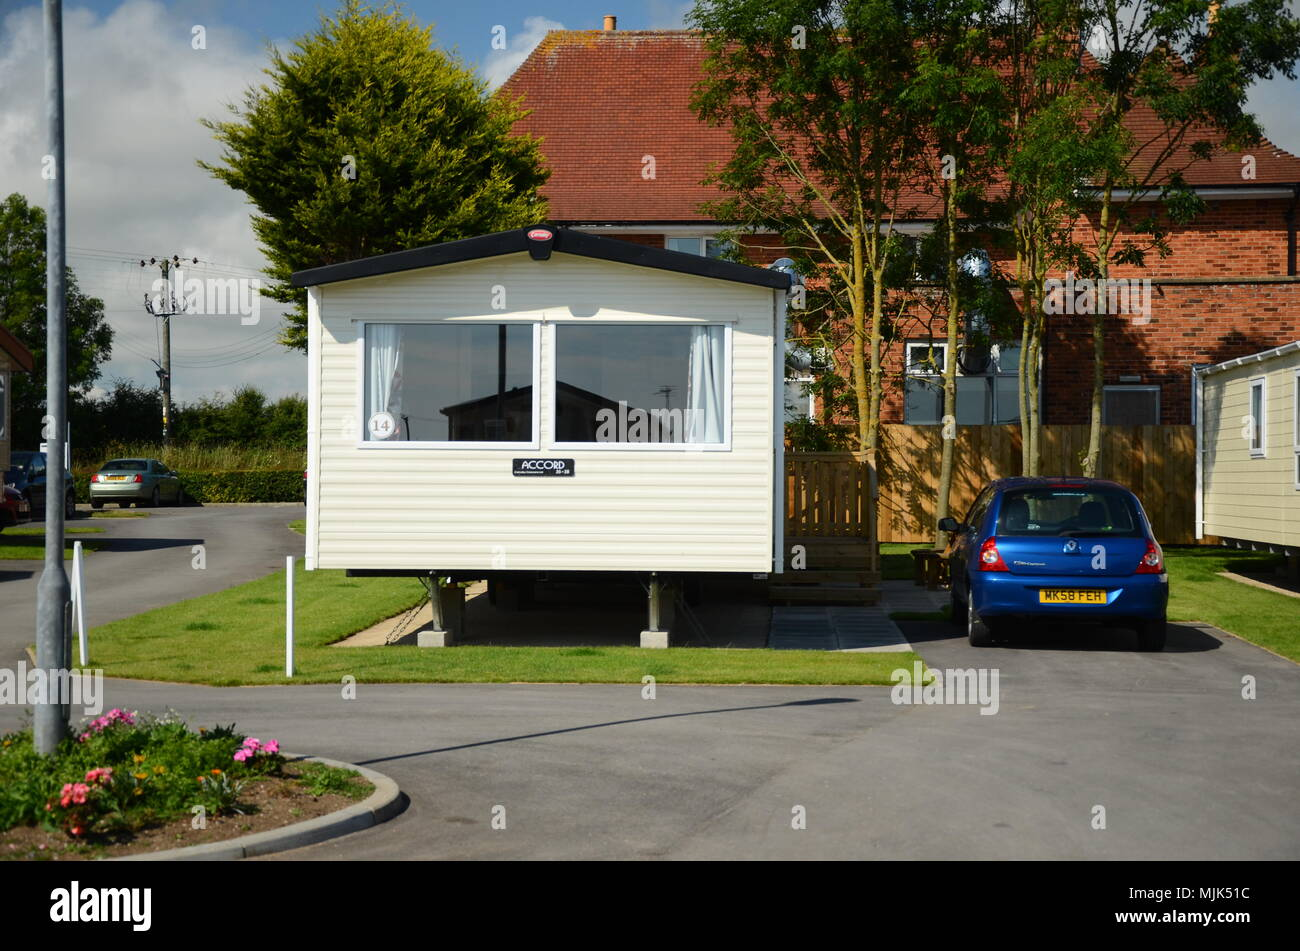 permanent caravan sites for Gypsy and Traveller communities - Stock Image